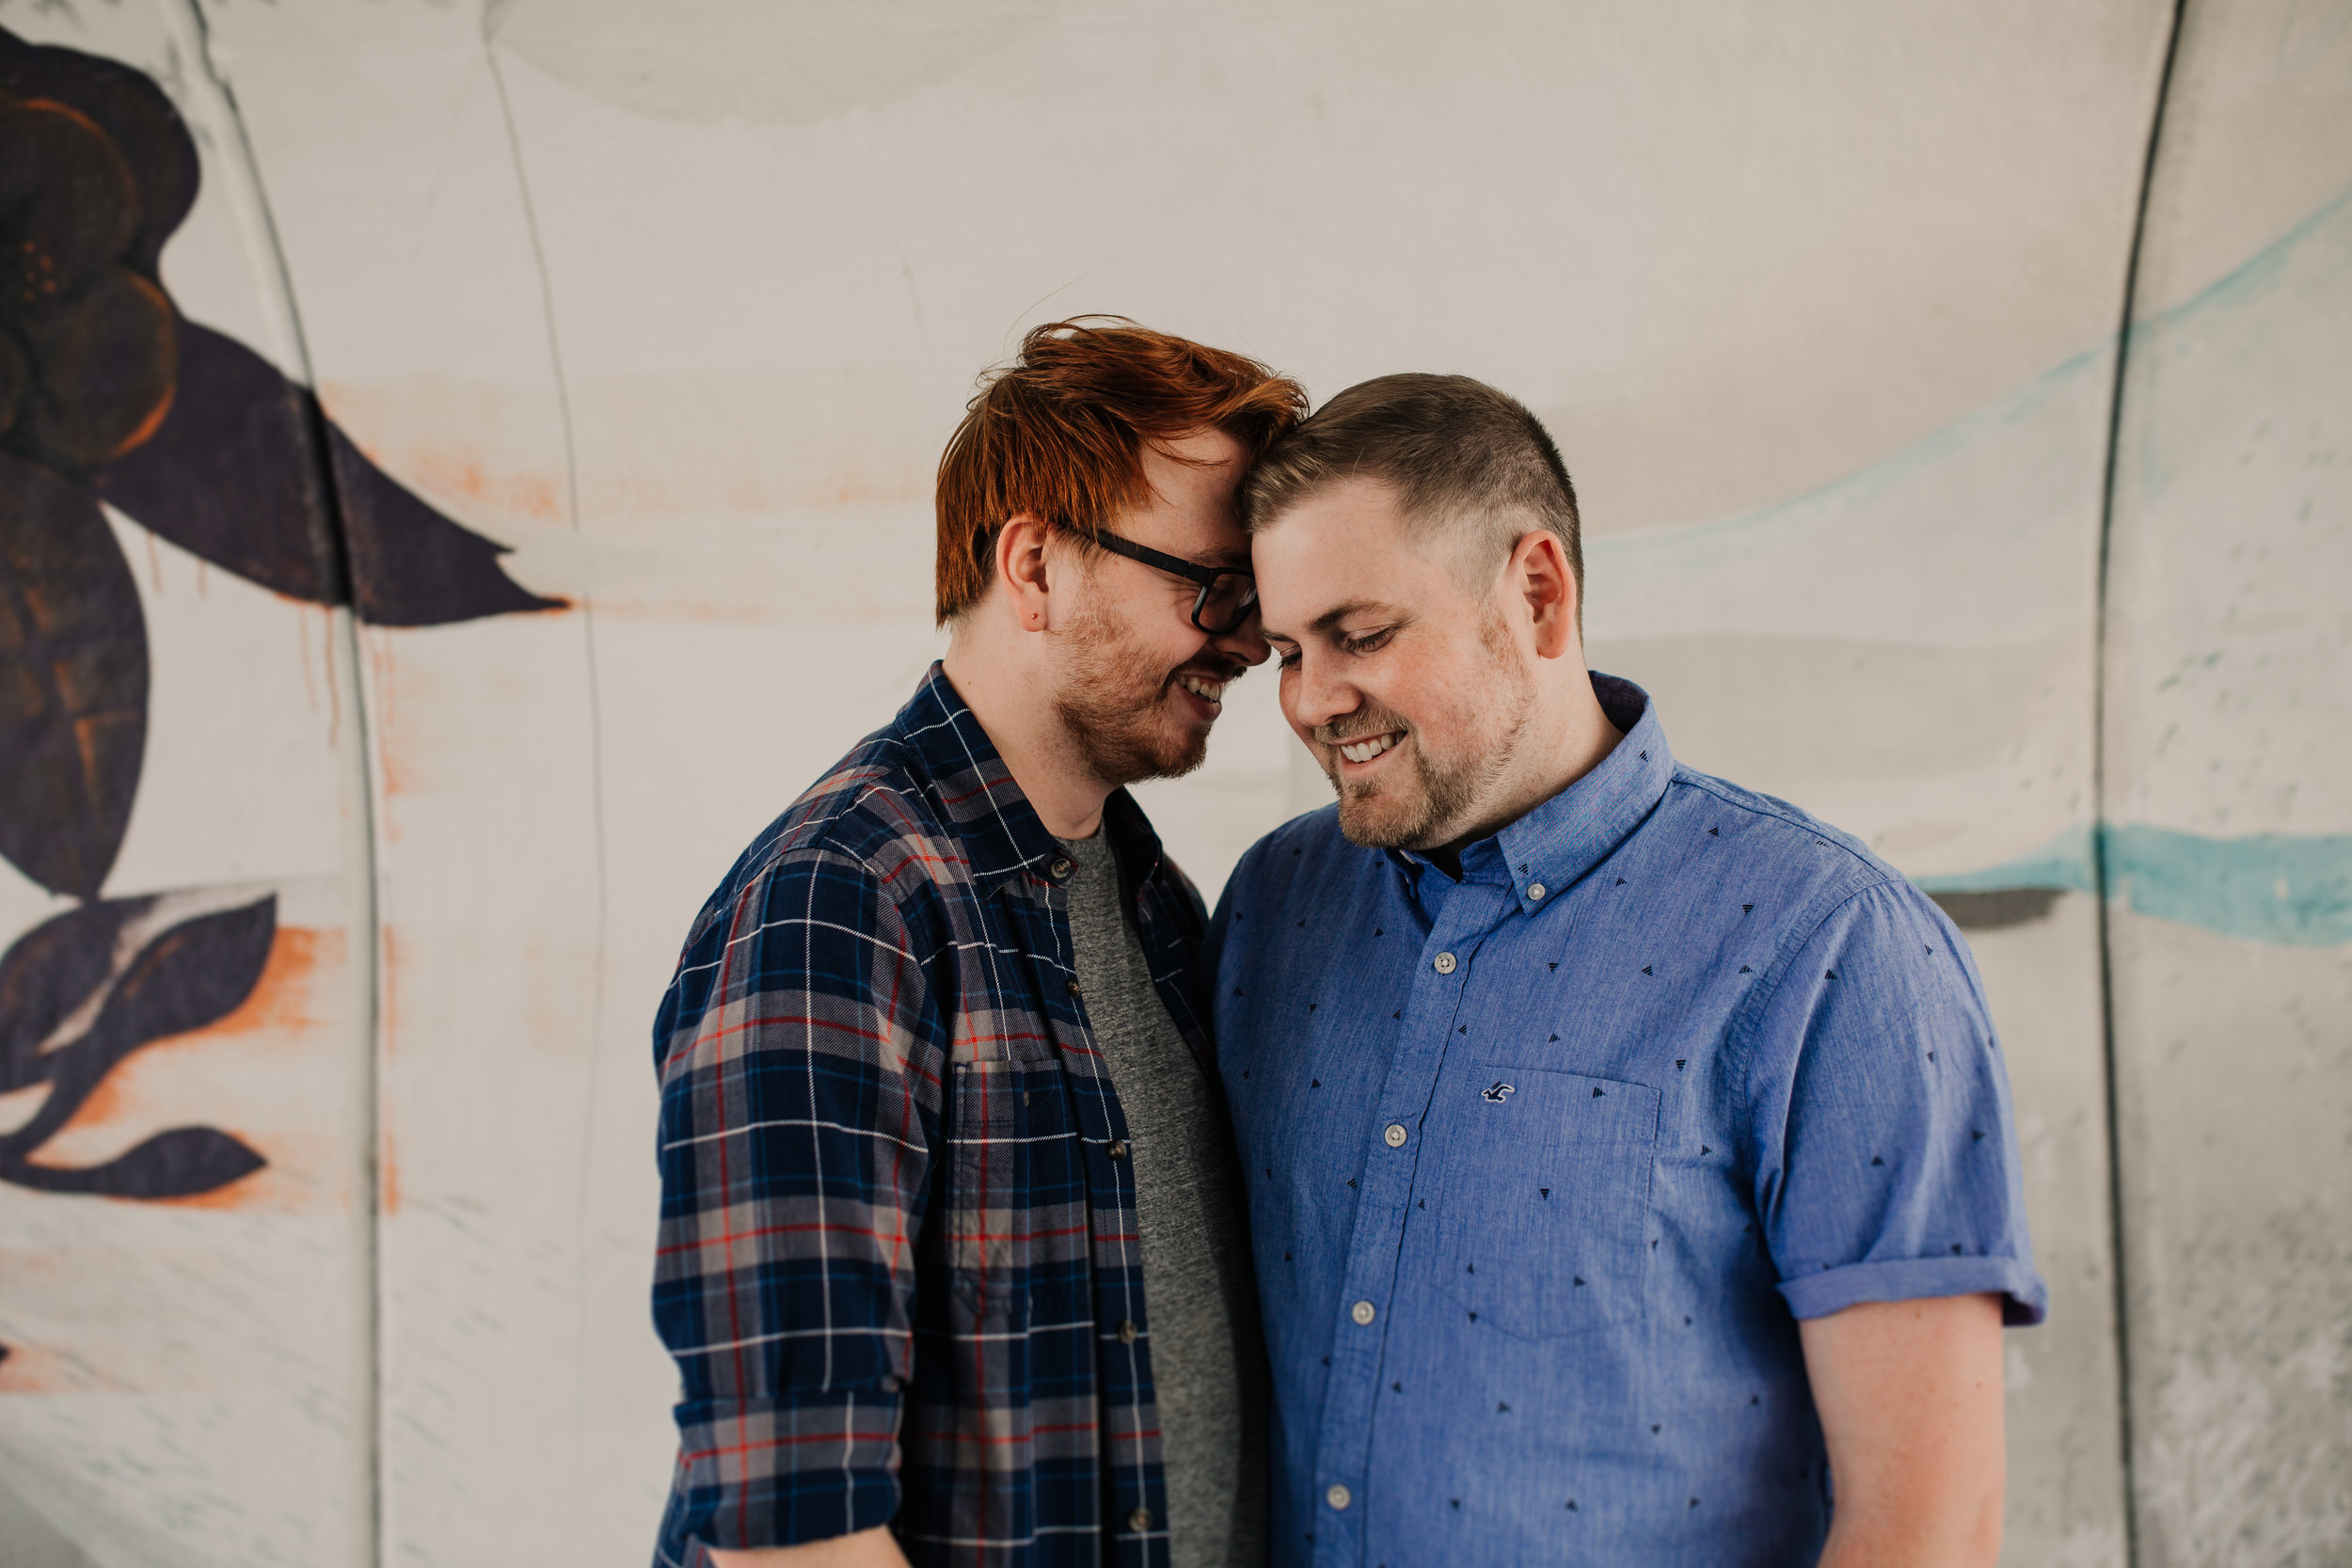 Engagement portrait of same sex couple in West Virginia.